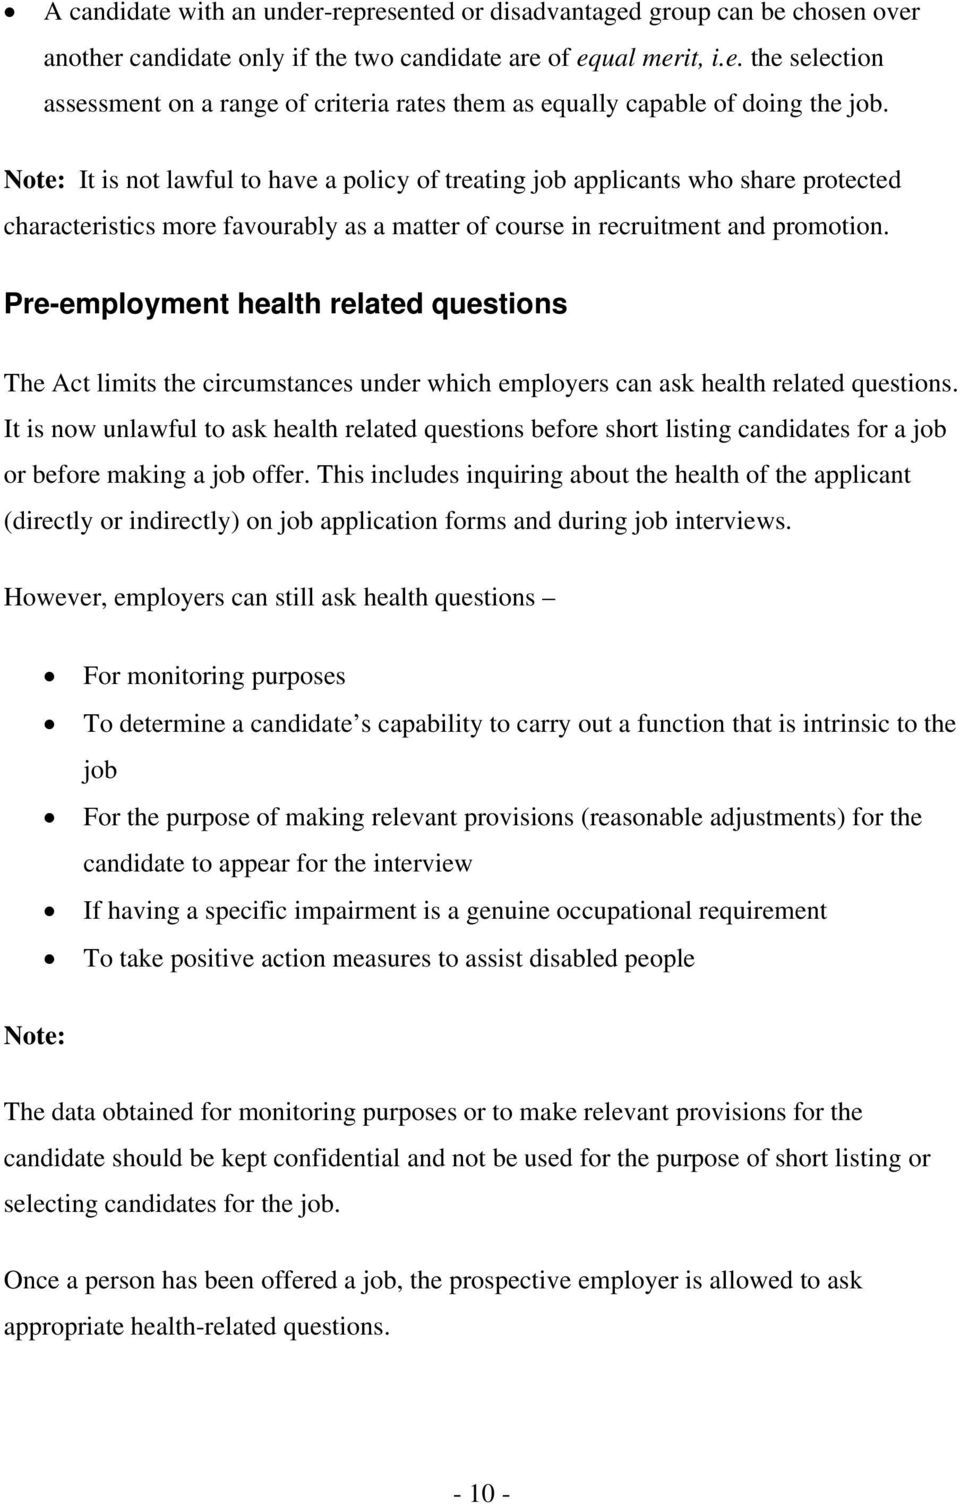 Pre-employment health related questions The Act limits the circumstances under which employers can ask health related questions.